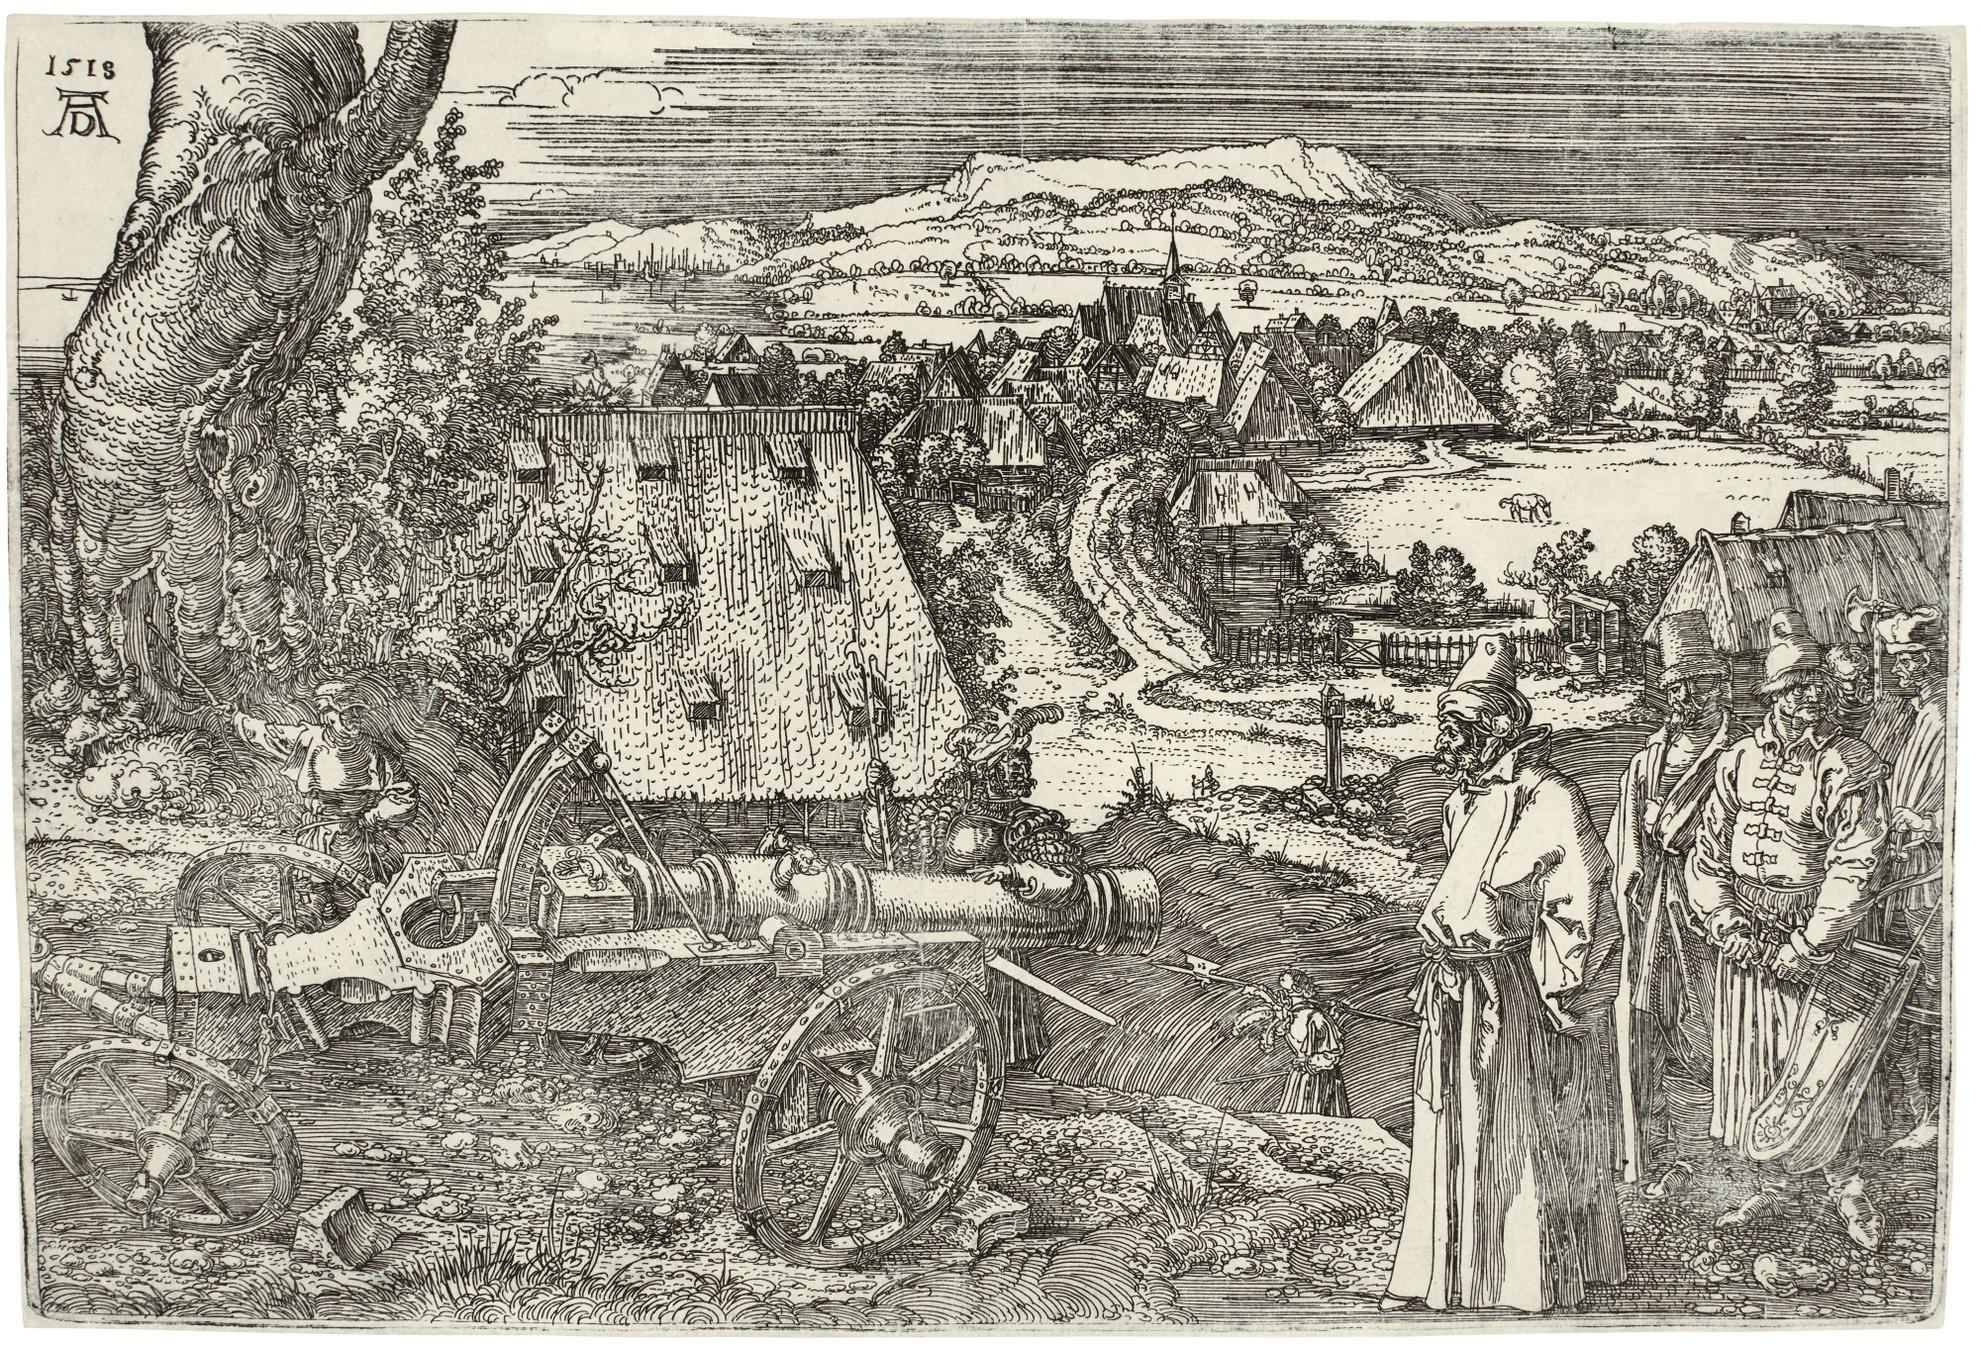 Albrecht Durer-The Landscape With The Cannon (B. 99; M., Holl 96)-1518